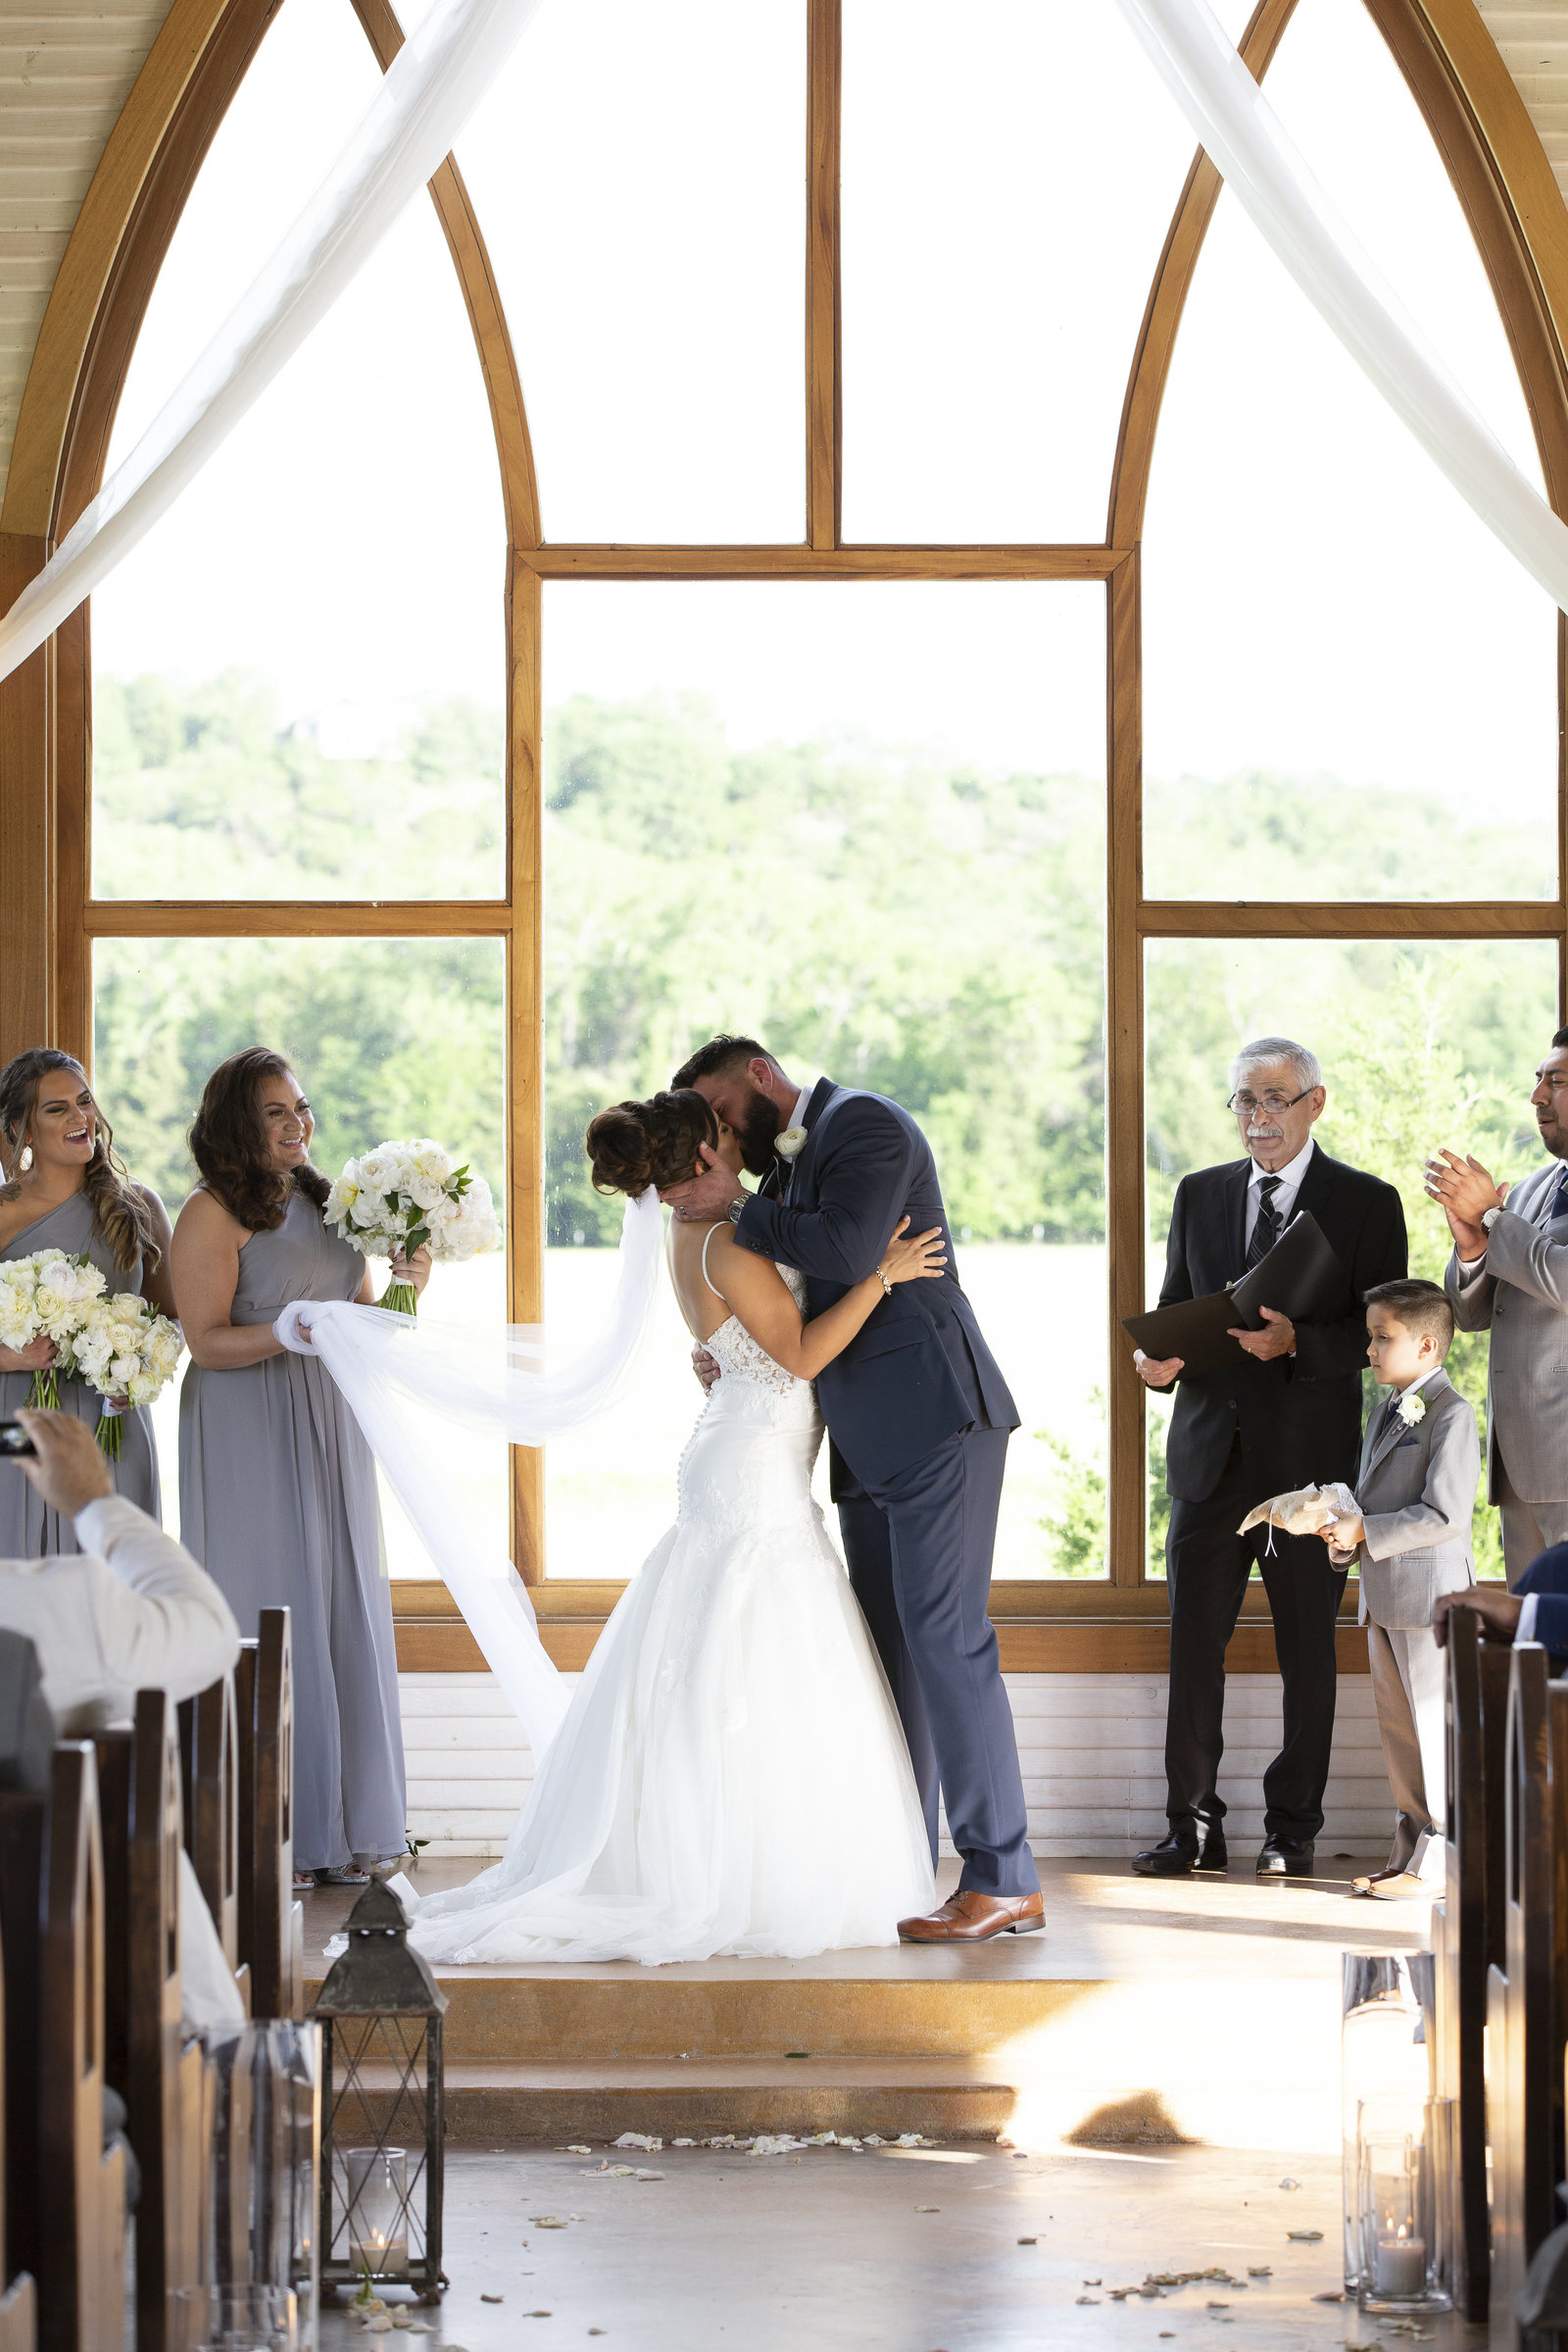 RMPhotography_PenaWedding_May4th2019_Ceremony-61